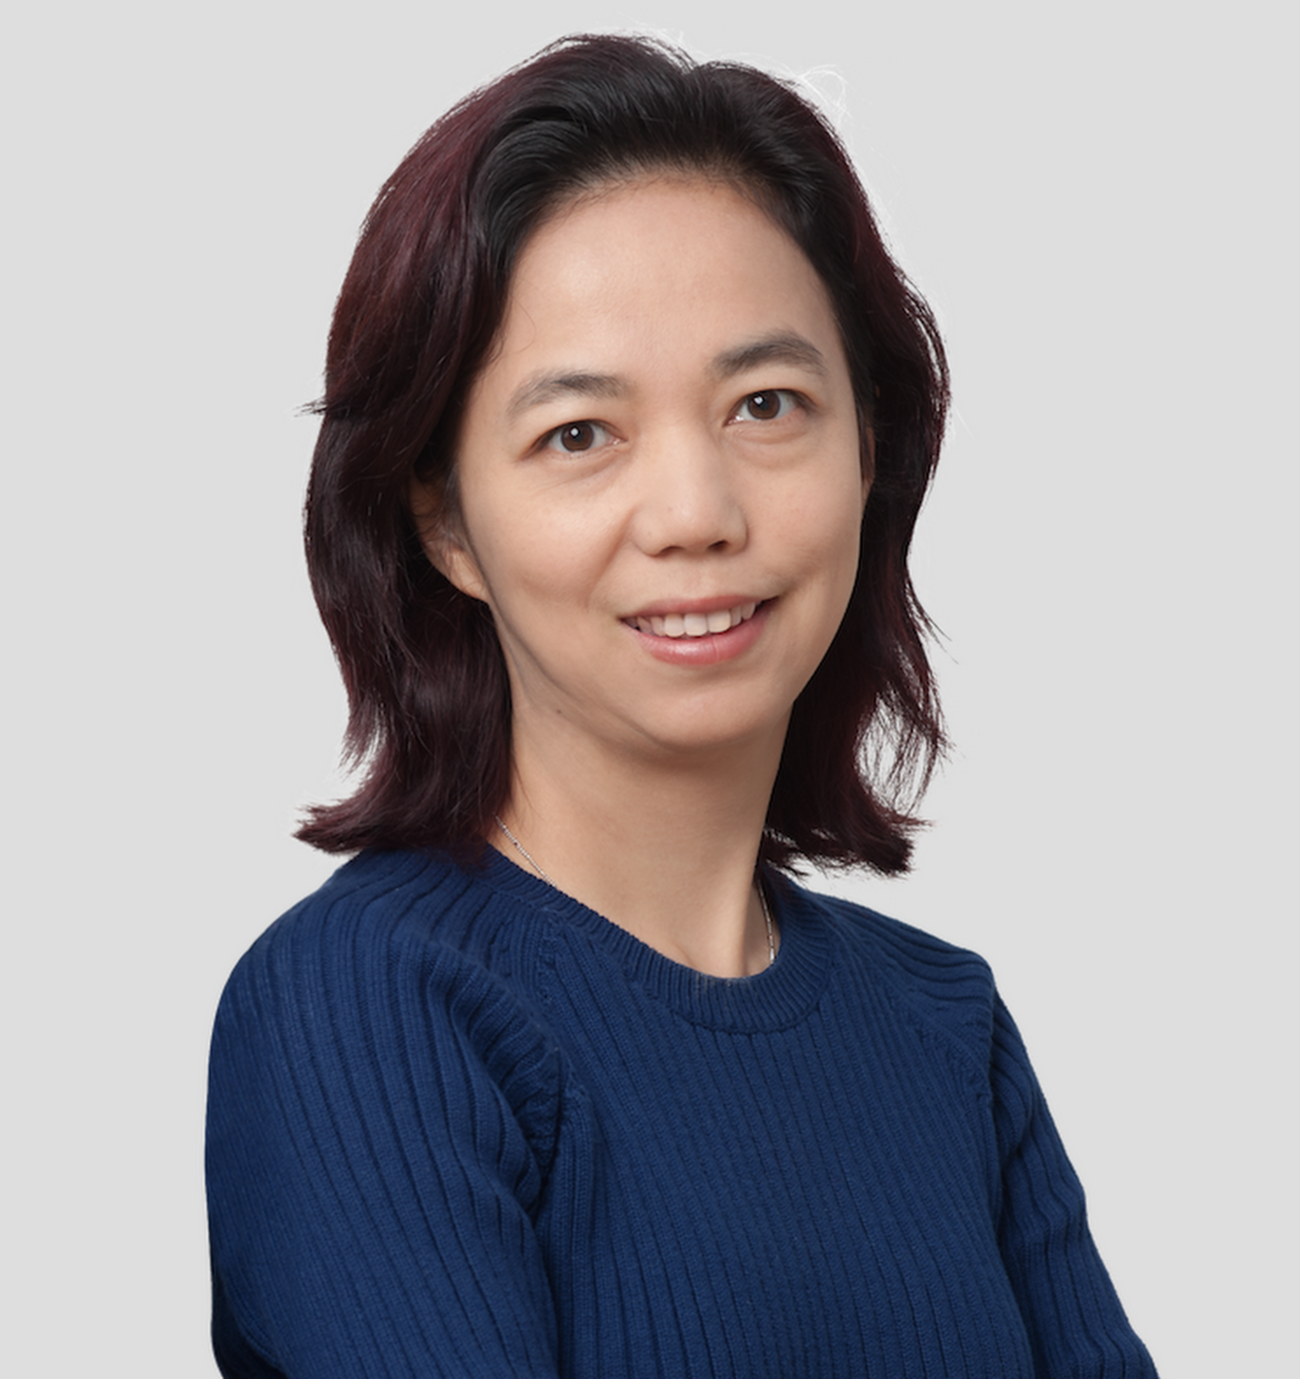 Fei-Fei Li women in AI